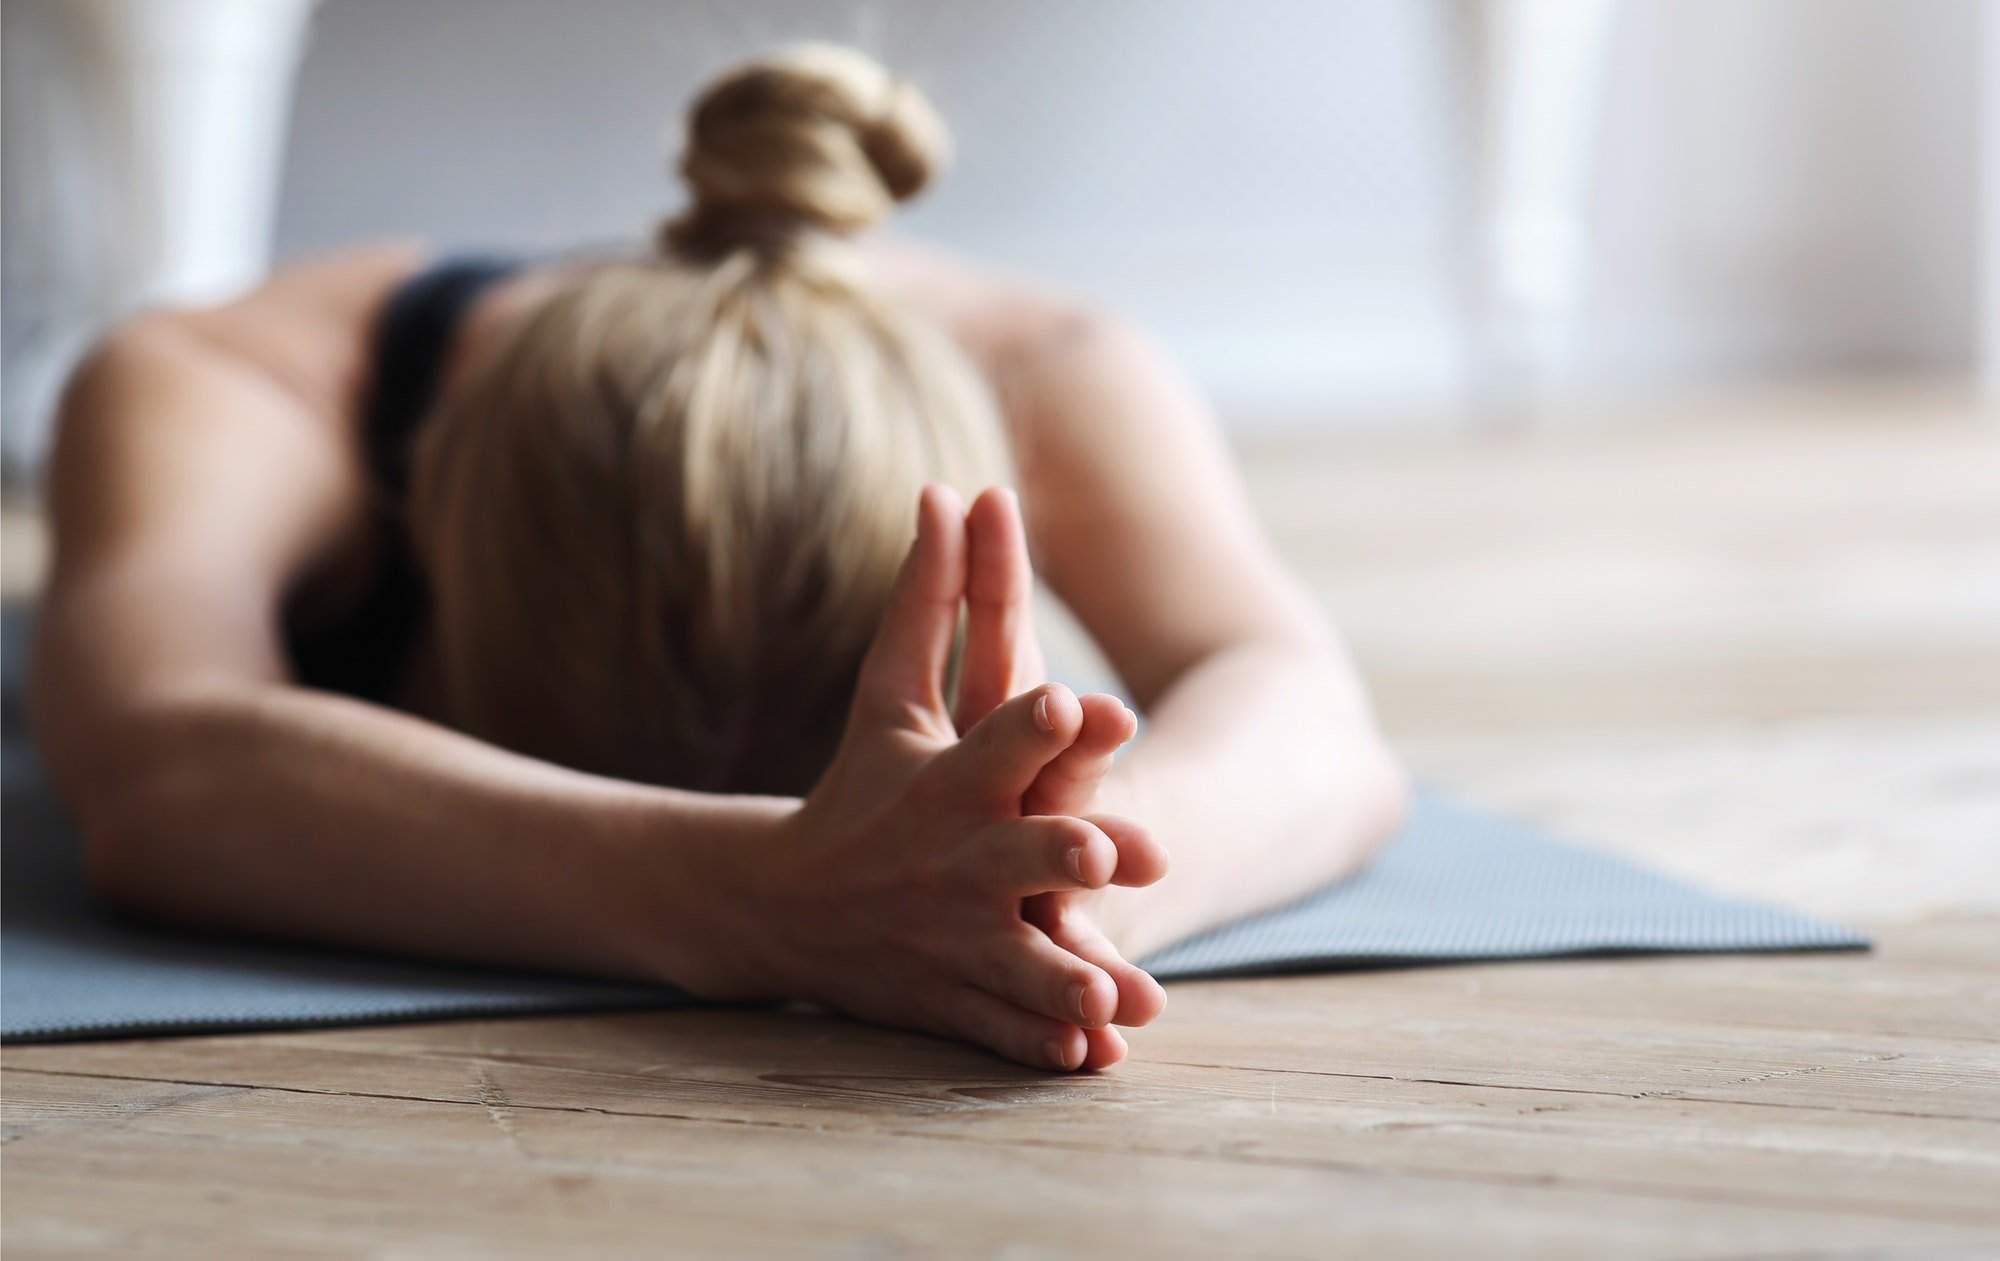 Fit girl laying face down on yoga mat, stretching